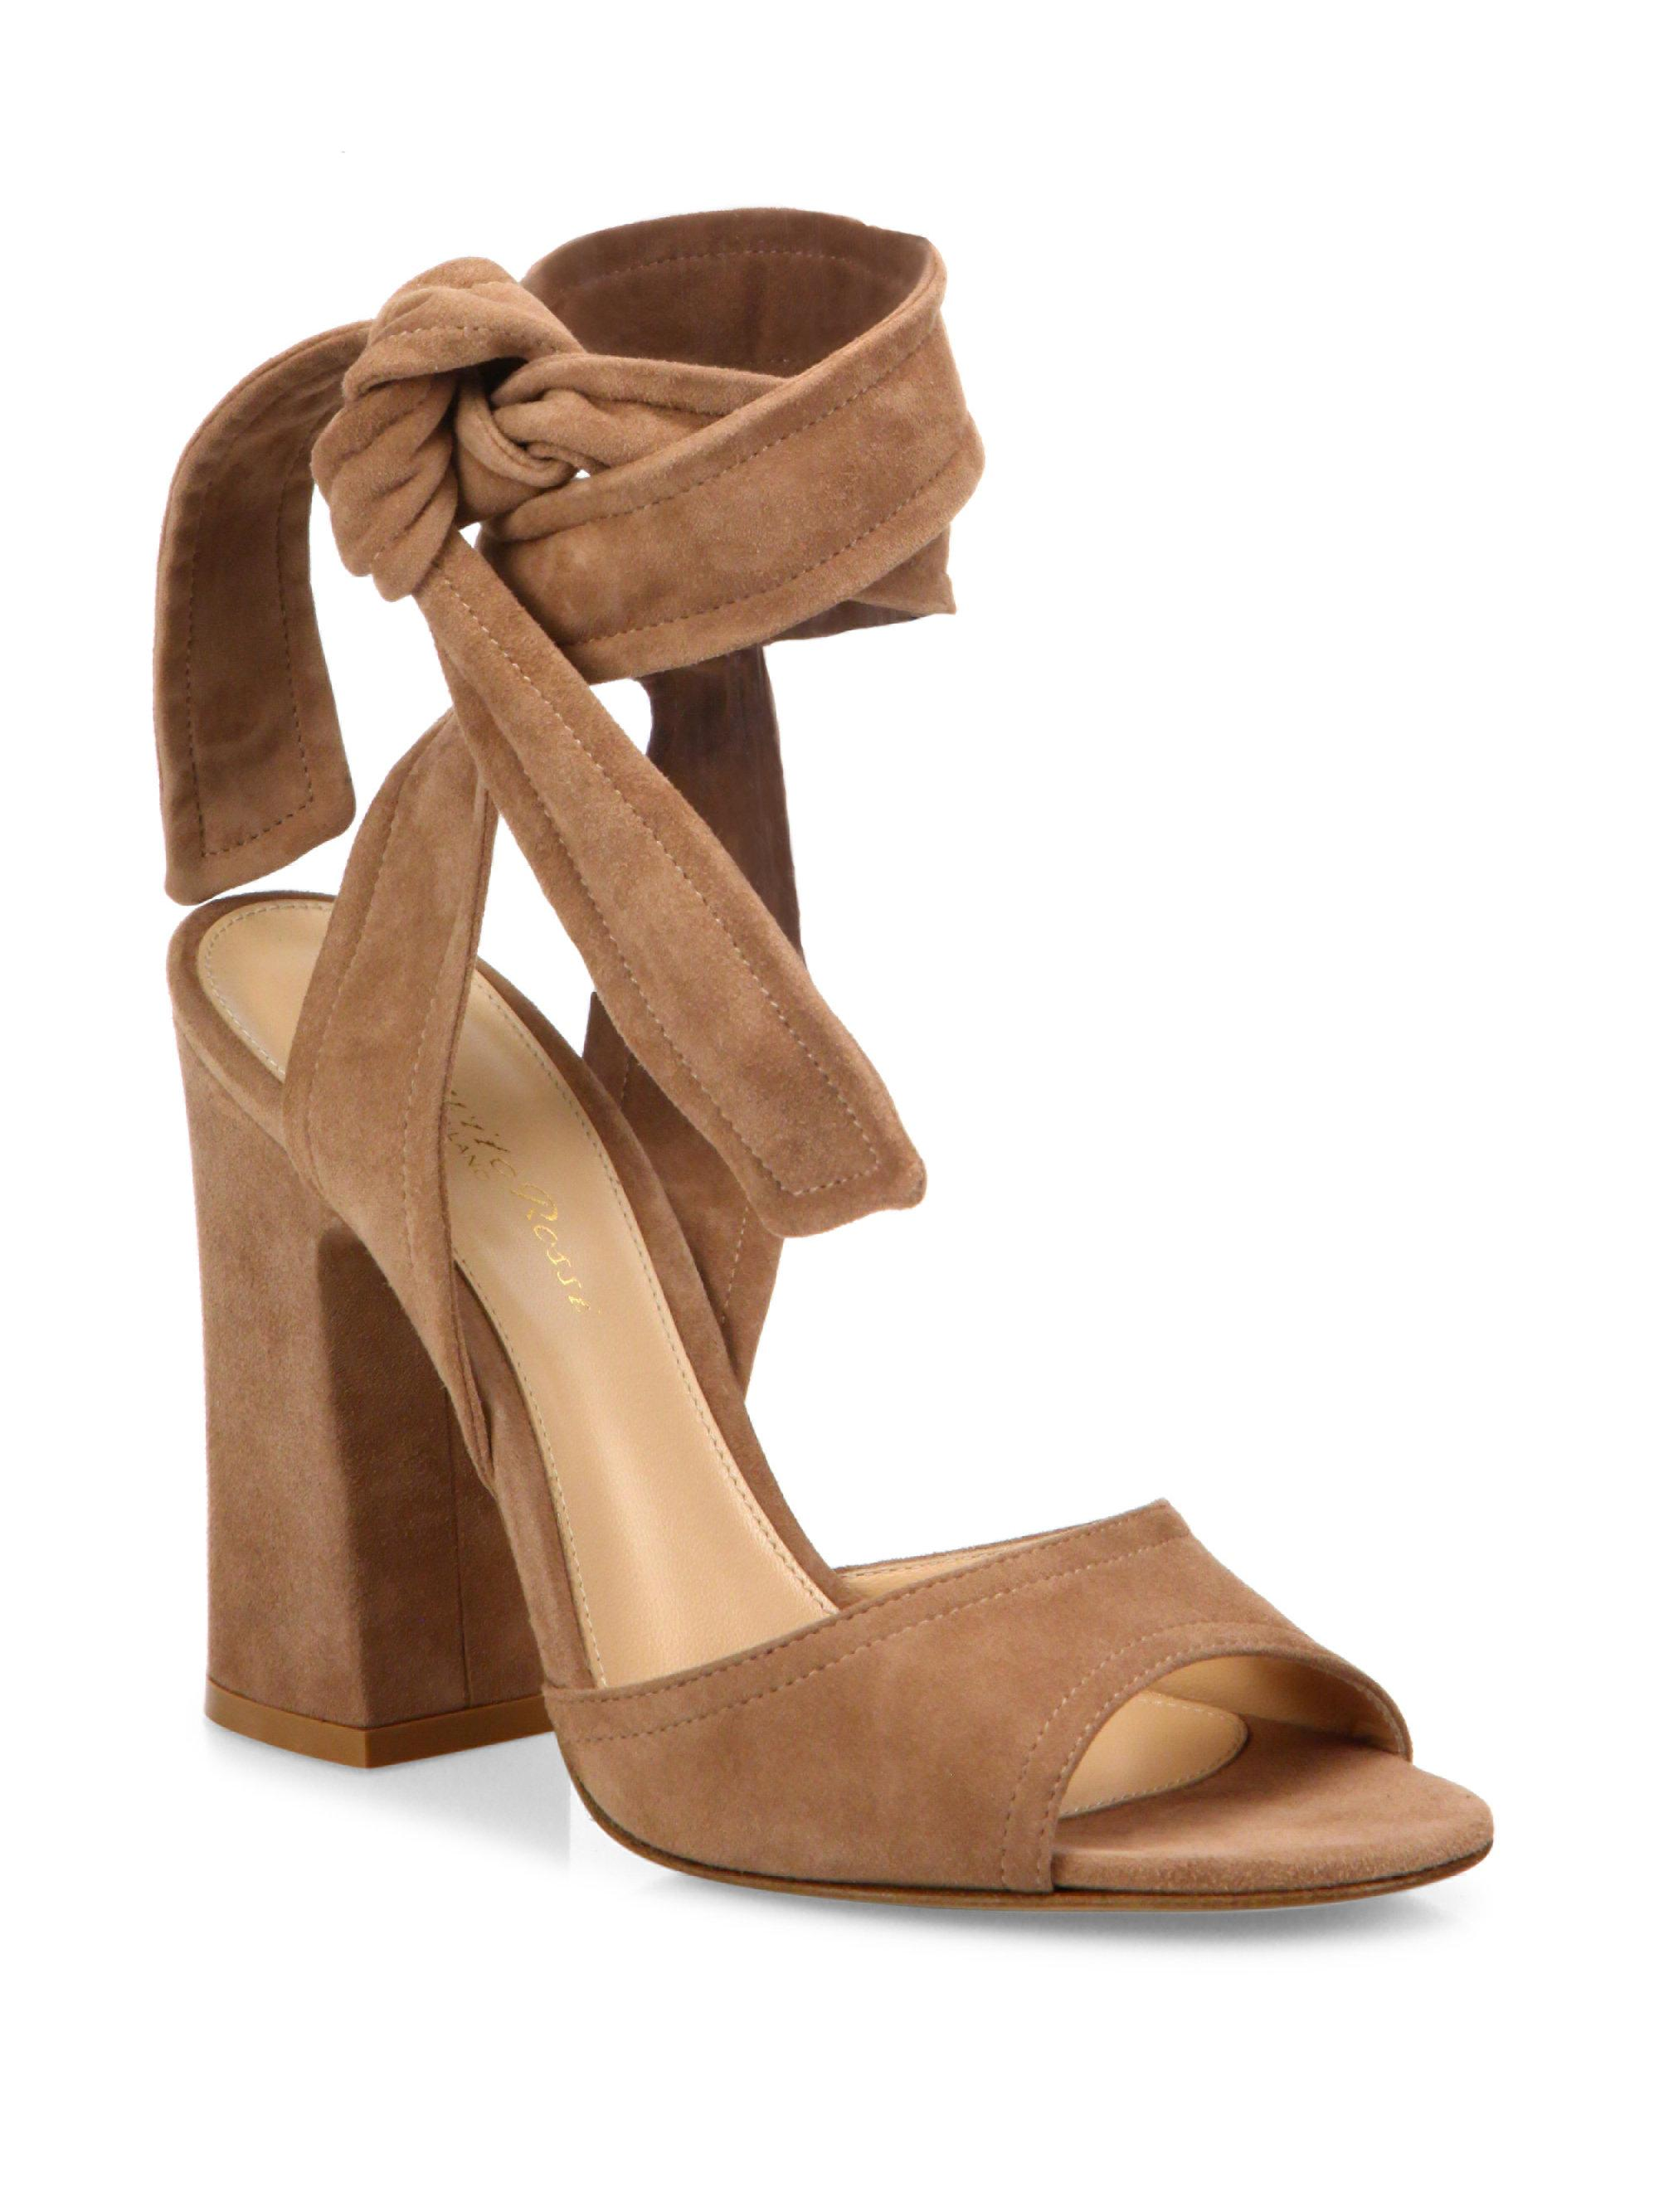 e5c0306587 Gianvito Rossi Nika Suede Ankle-wrap Block Heel Sandals in Brown - Lyst